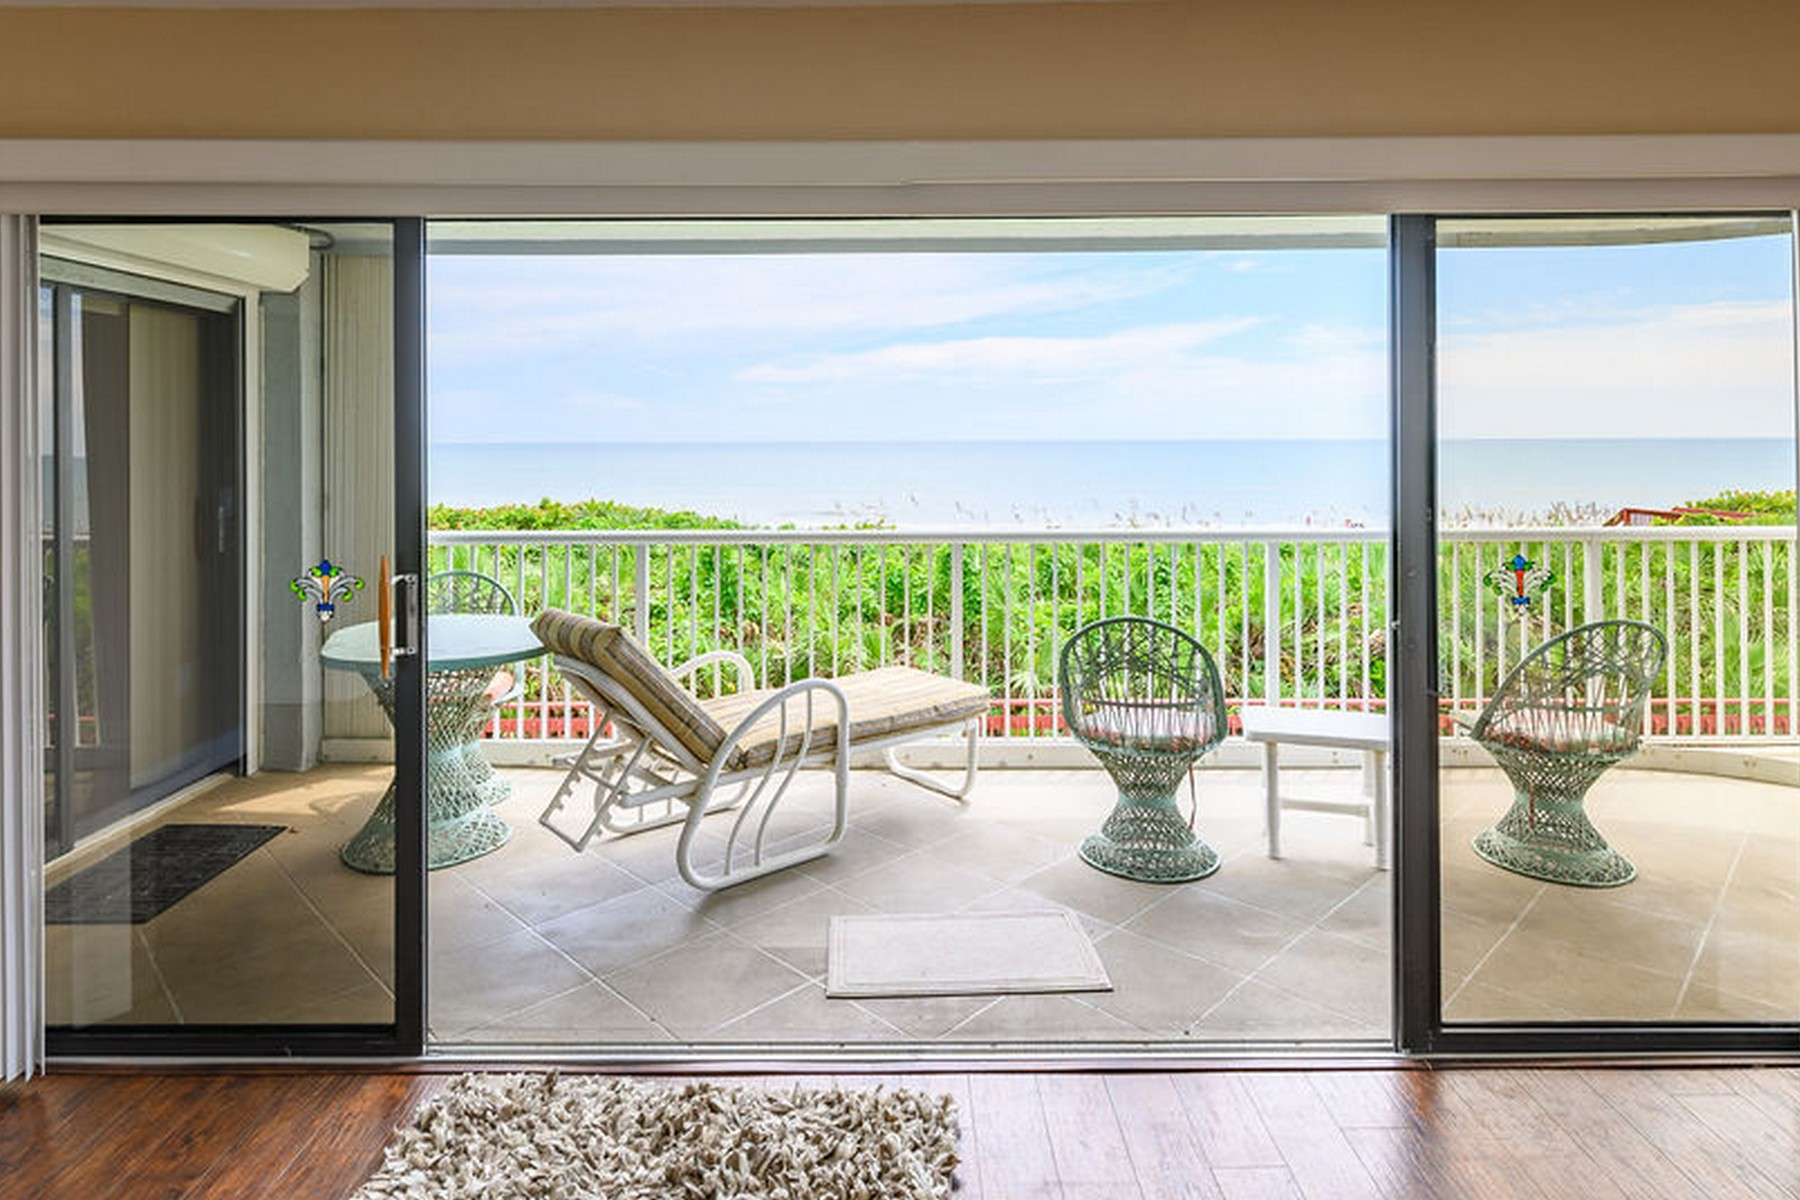 Additional photo for property listing at Highly Desirable Corner Unit with Amazing Views of the Beautiful East Coast 295 Highway A1A Unit 208 Satellite Beach, Florida 32937 United States